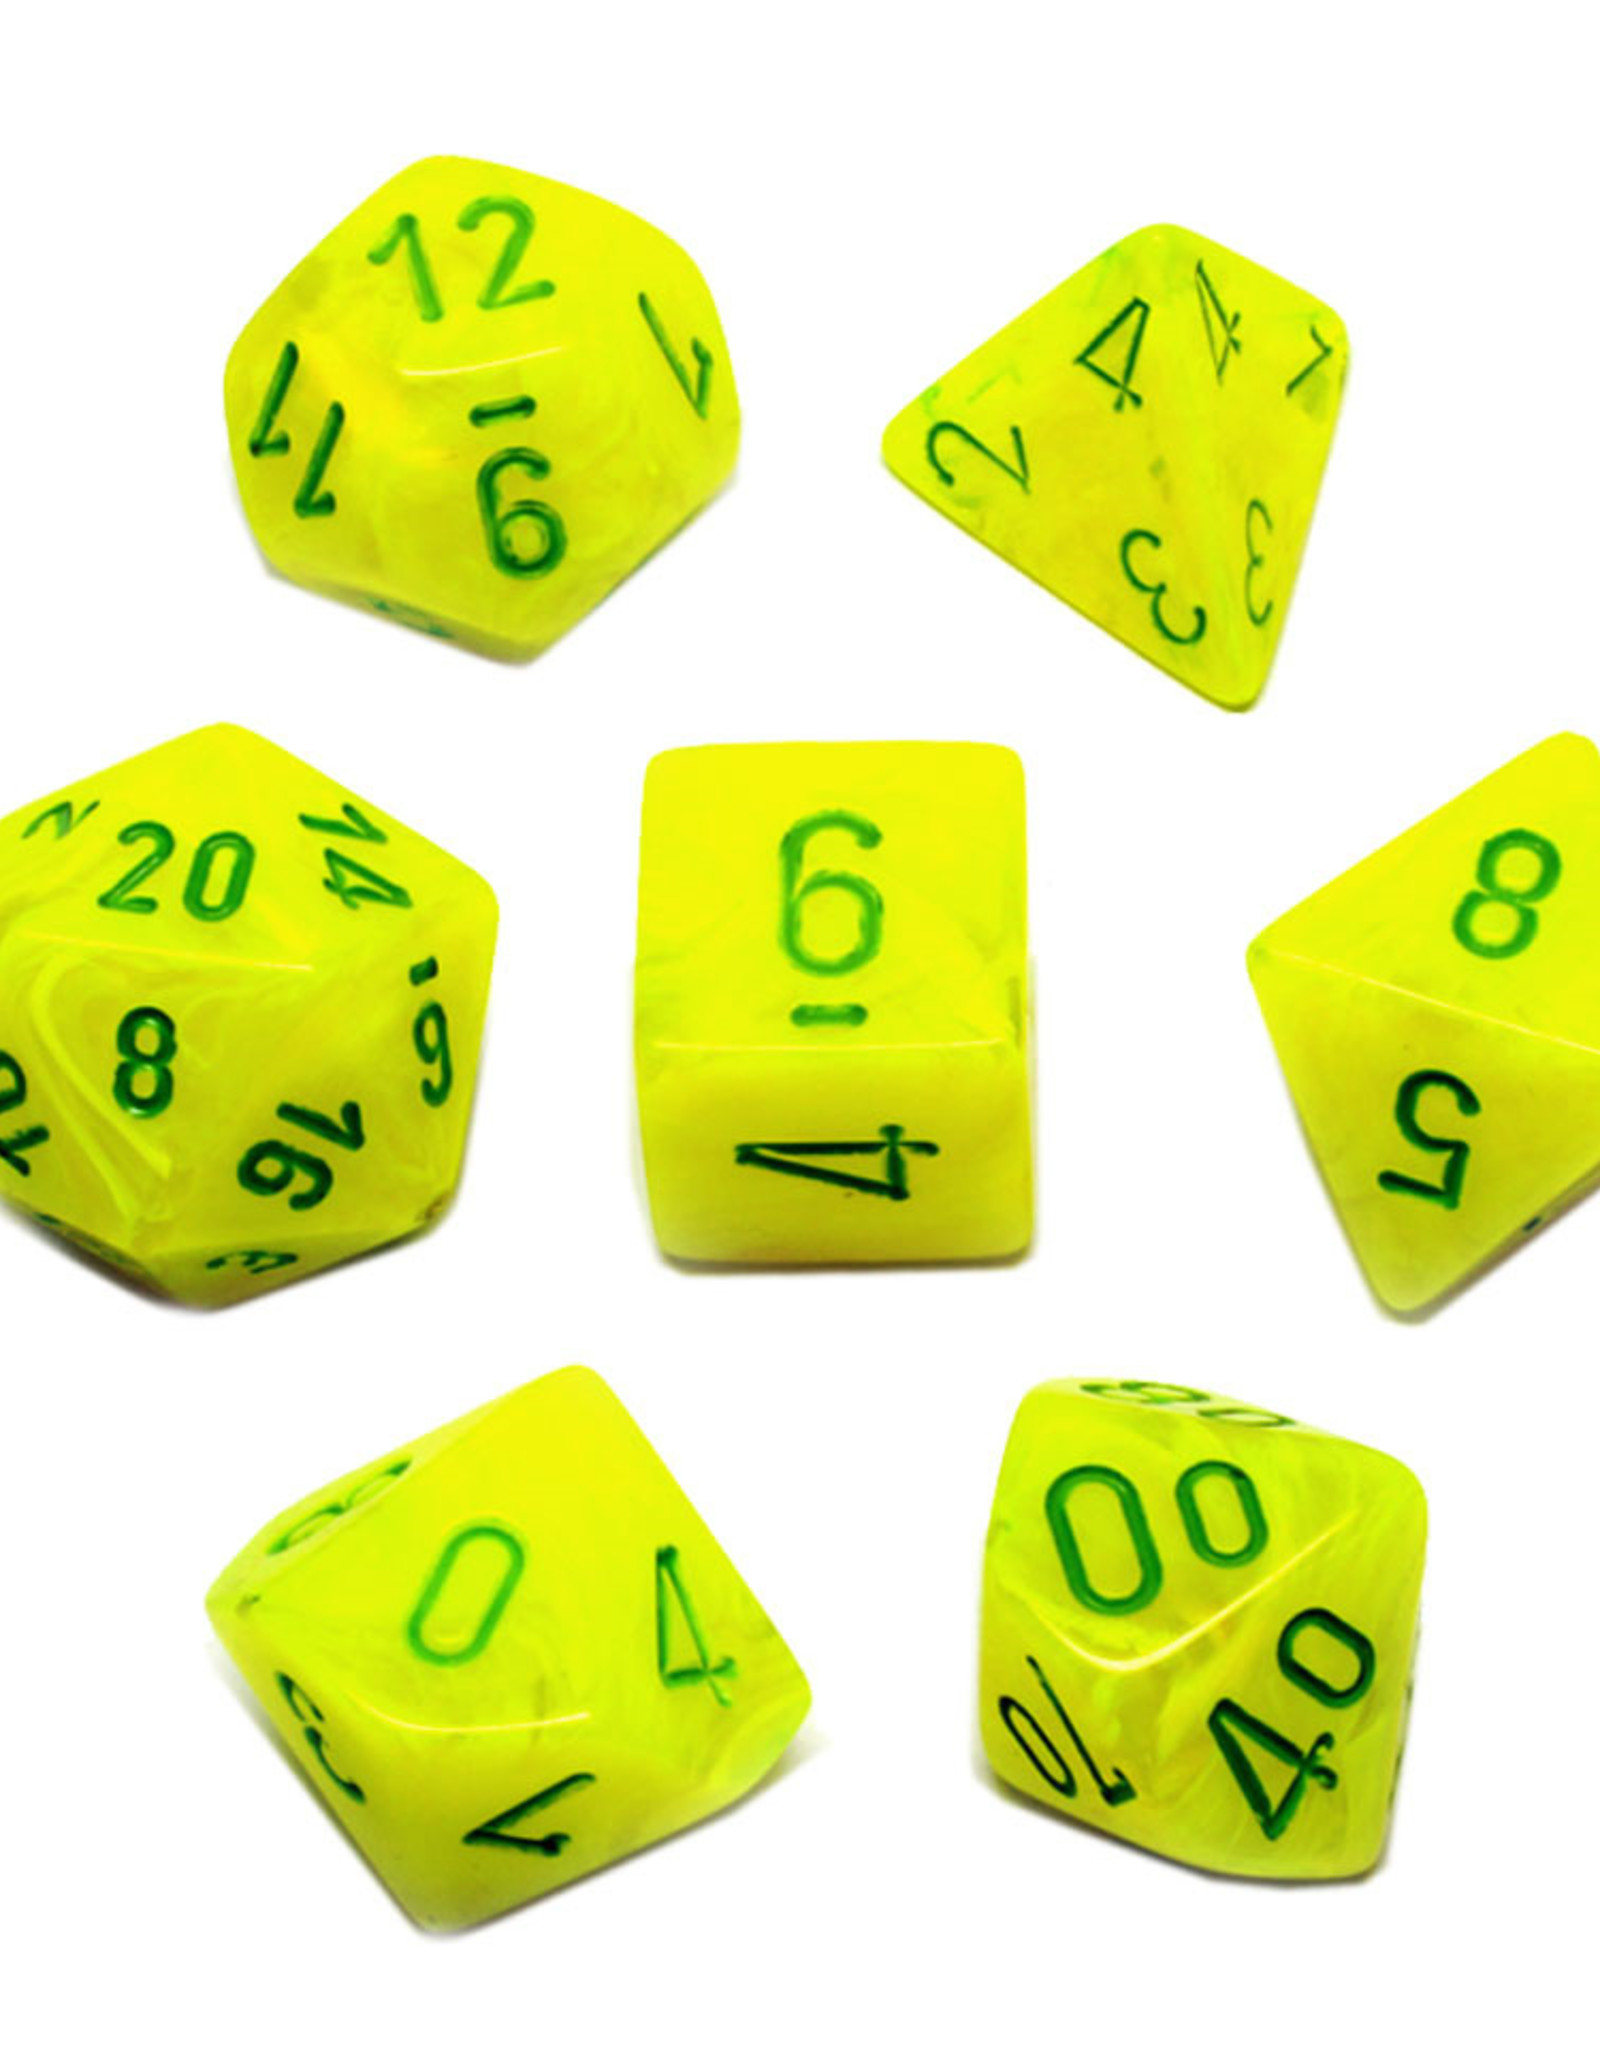 Chessex Chessex 7-Die set Vortex - Electric Yellow/Green